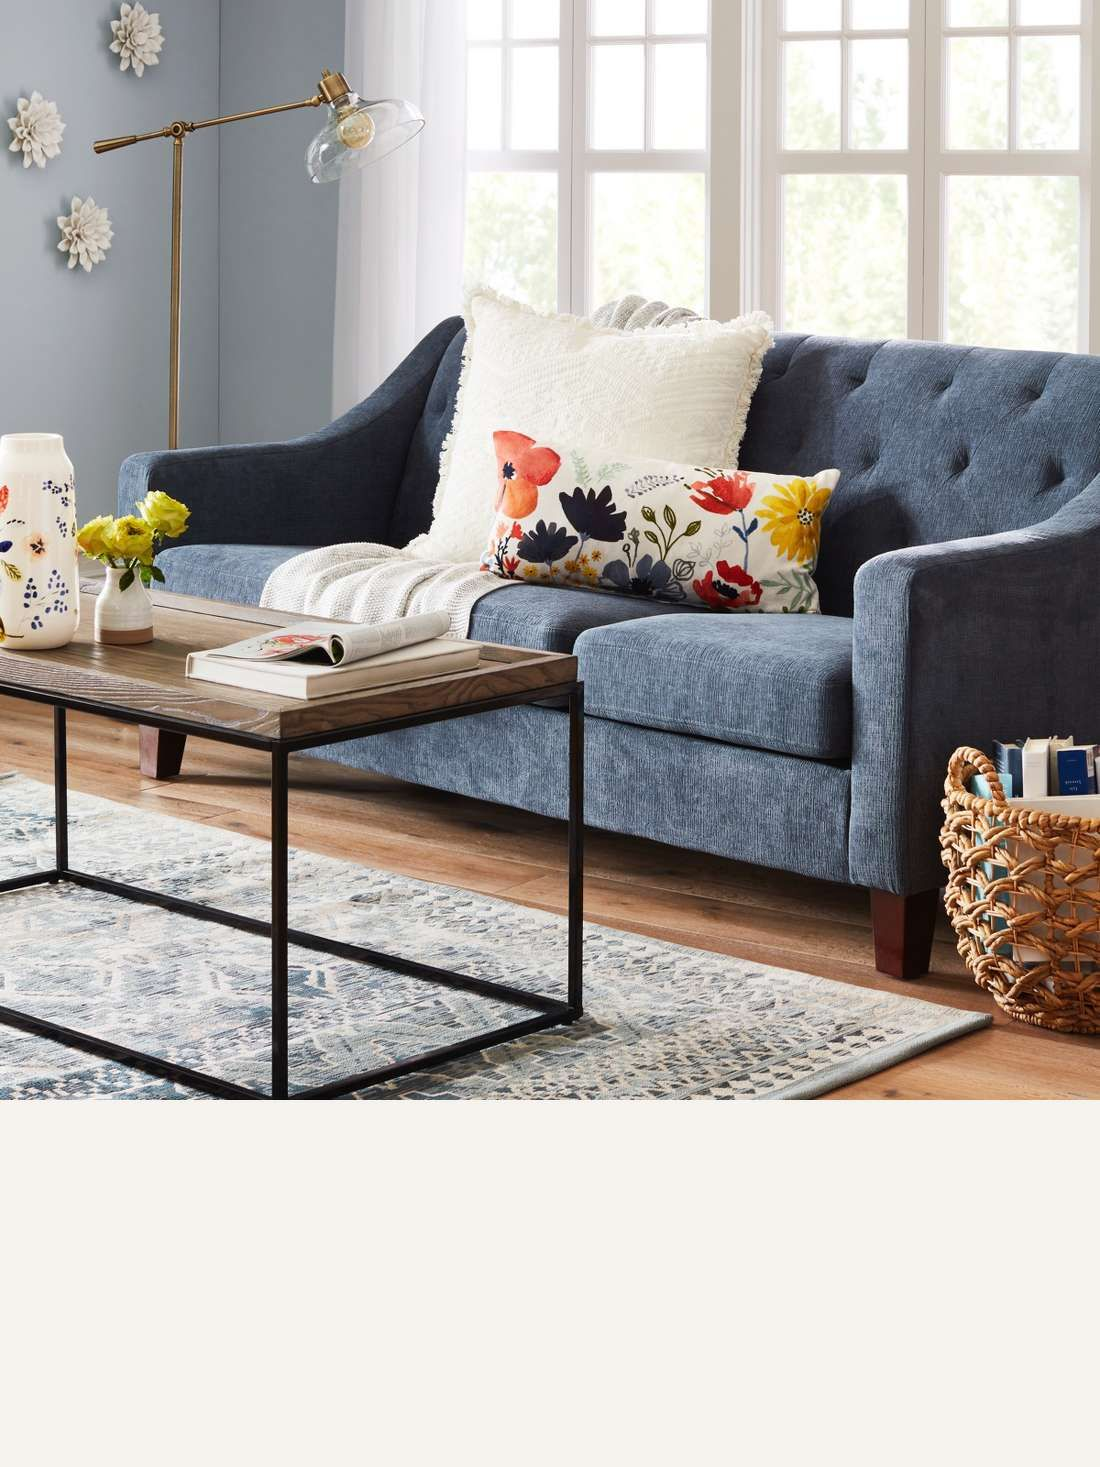 Futon Sofa Beds Under 200 With Images Leather Living Room Set